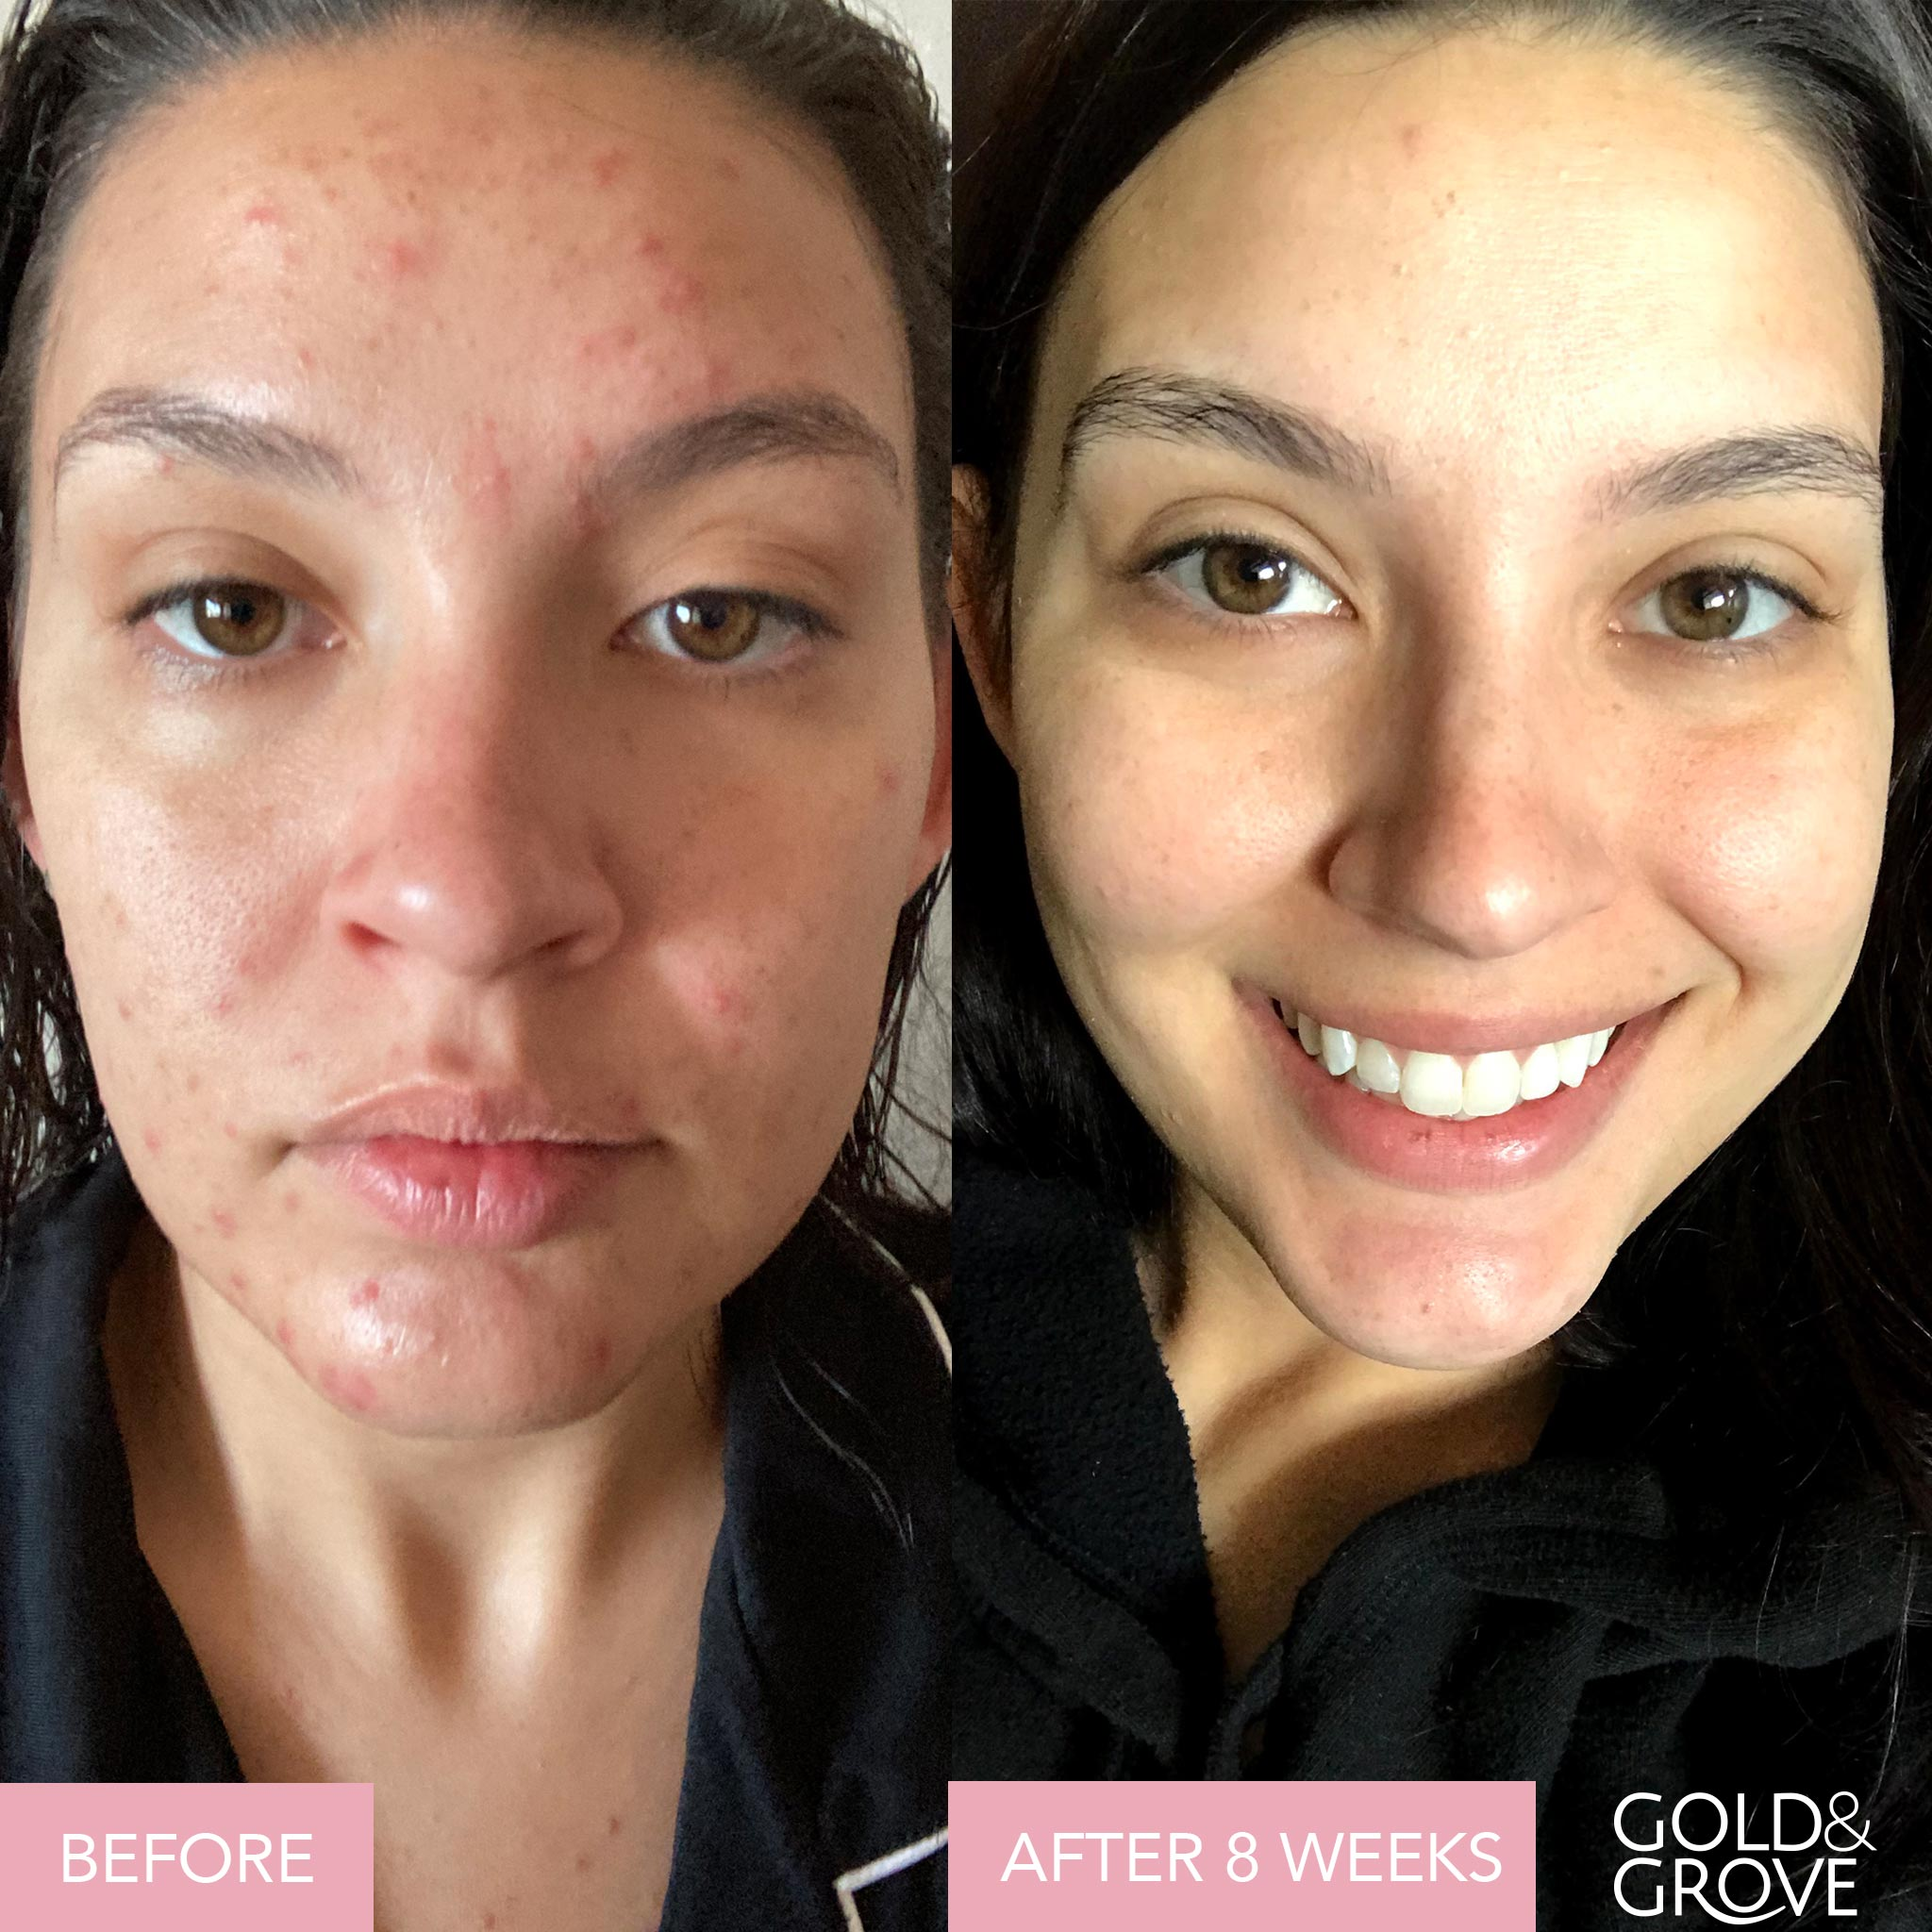 Gold & Grove Blemish Blend Skin Clearing Supplement